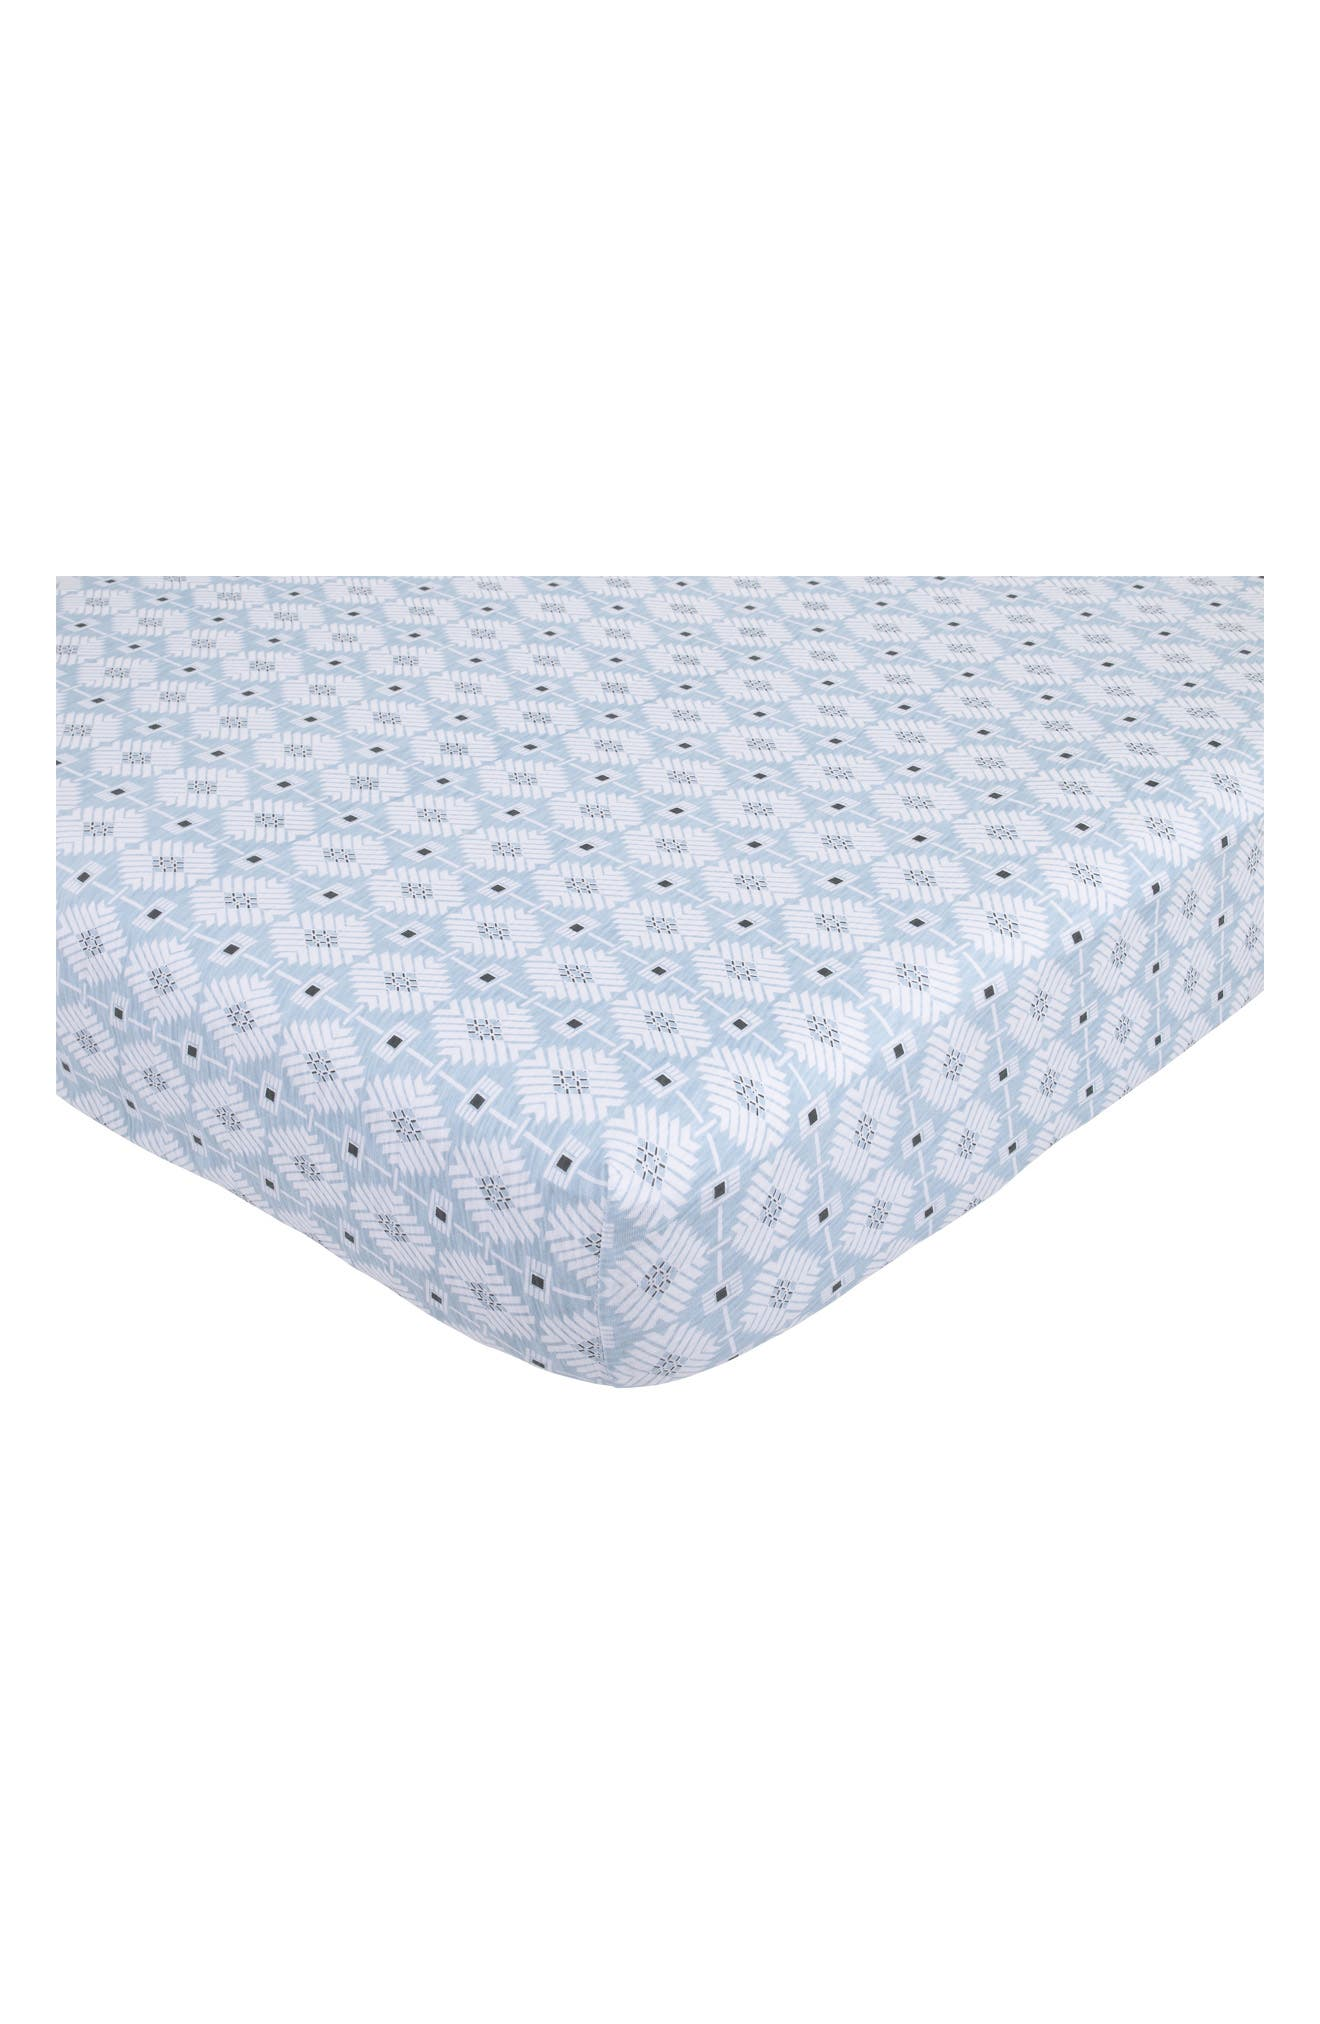 Main Image - Petunia Pickle Bottom Southwest Skies Fitted Sheet